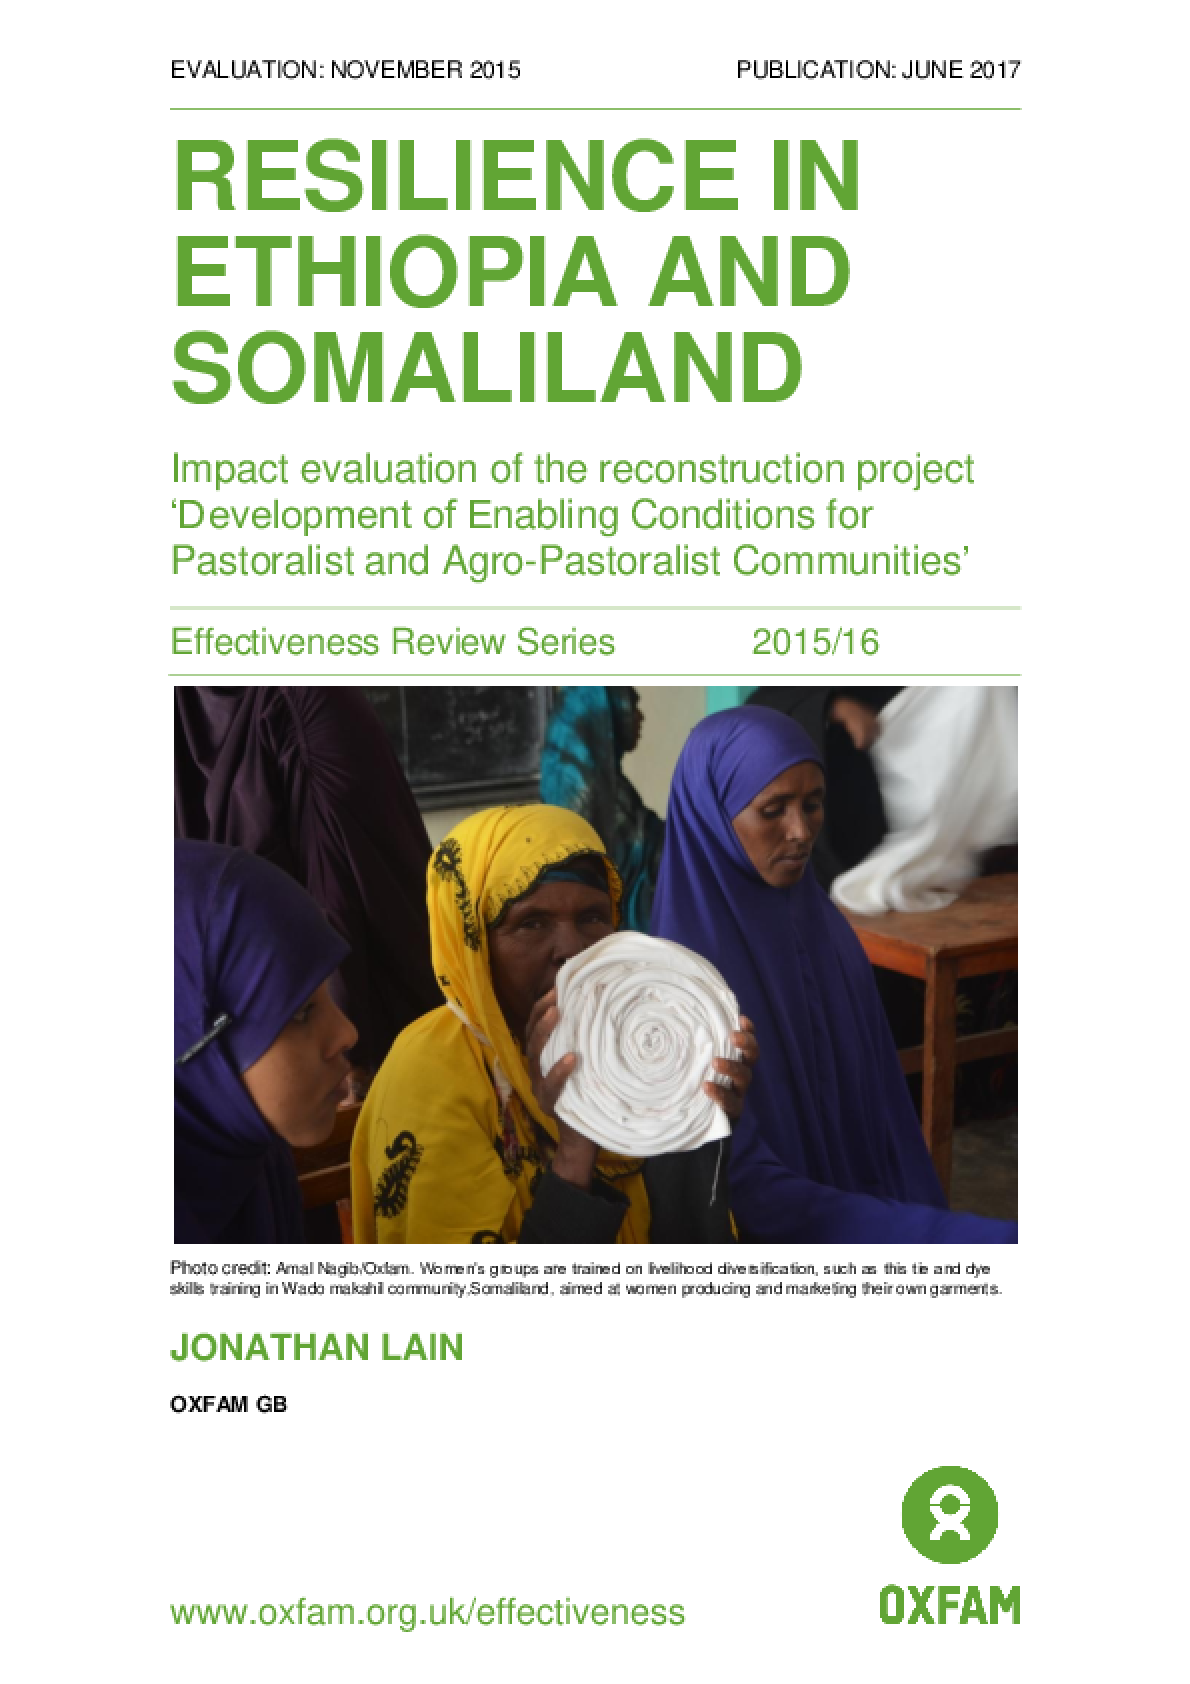 Resilience in Ethiopia and Somaliland: Impact evaluation of the reconstruction project 'Development of Enabling Conditions for Pastoralist and Agro-Pastoralist Communities'